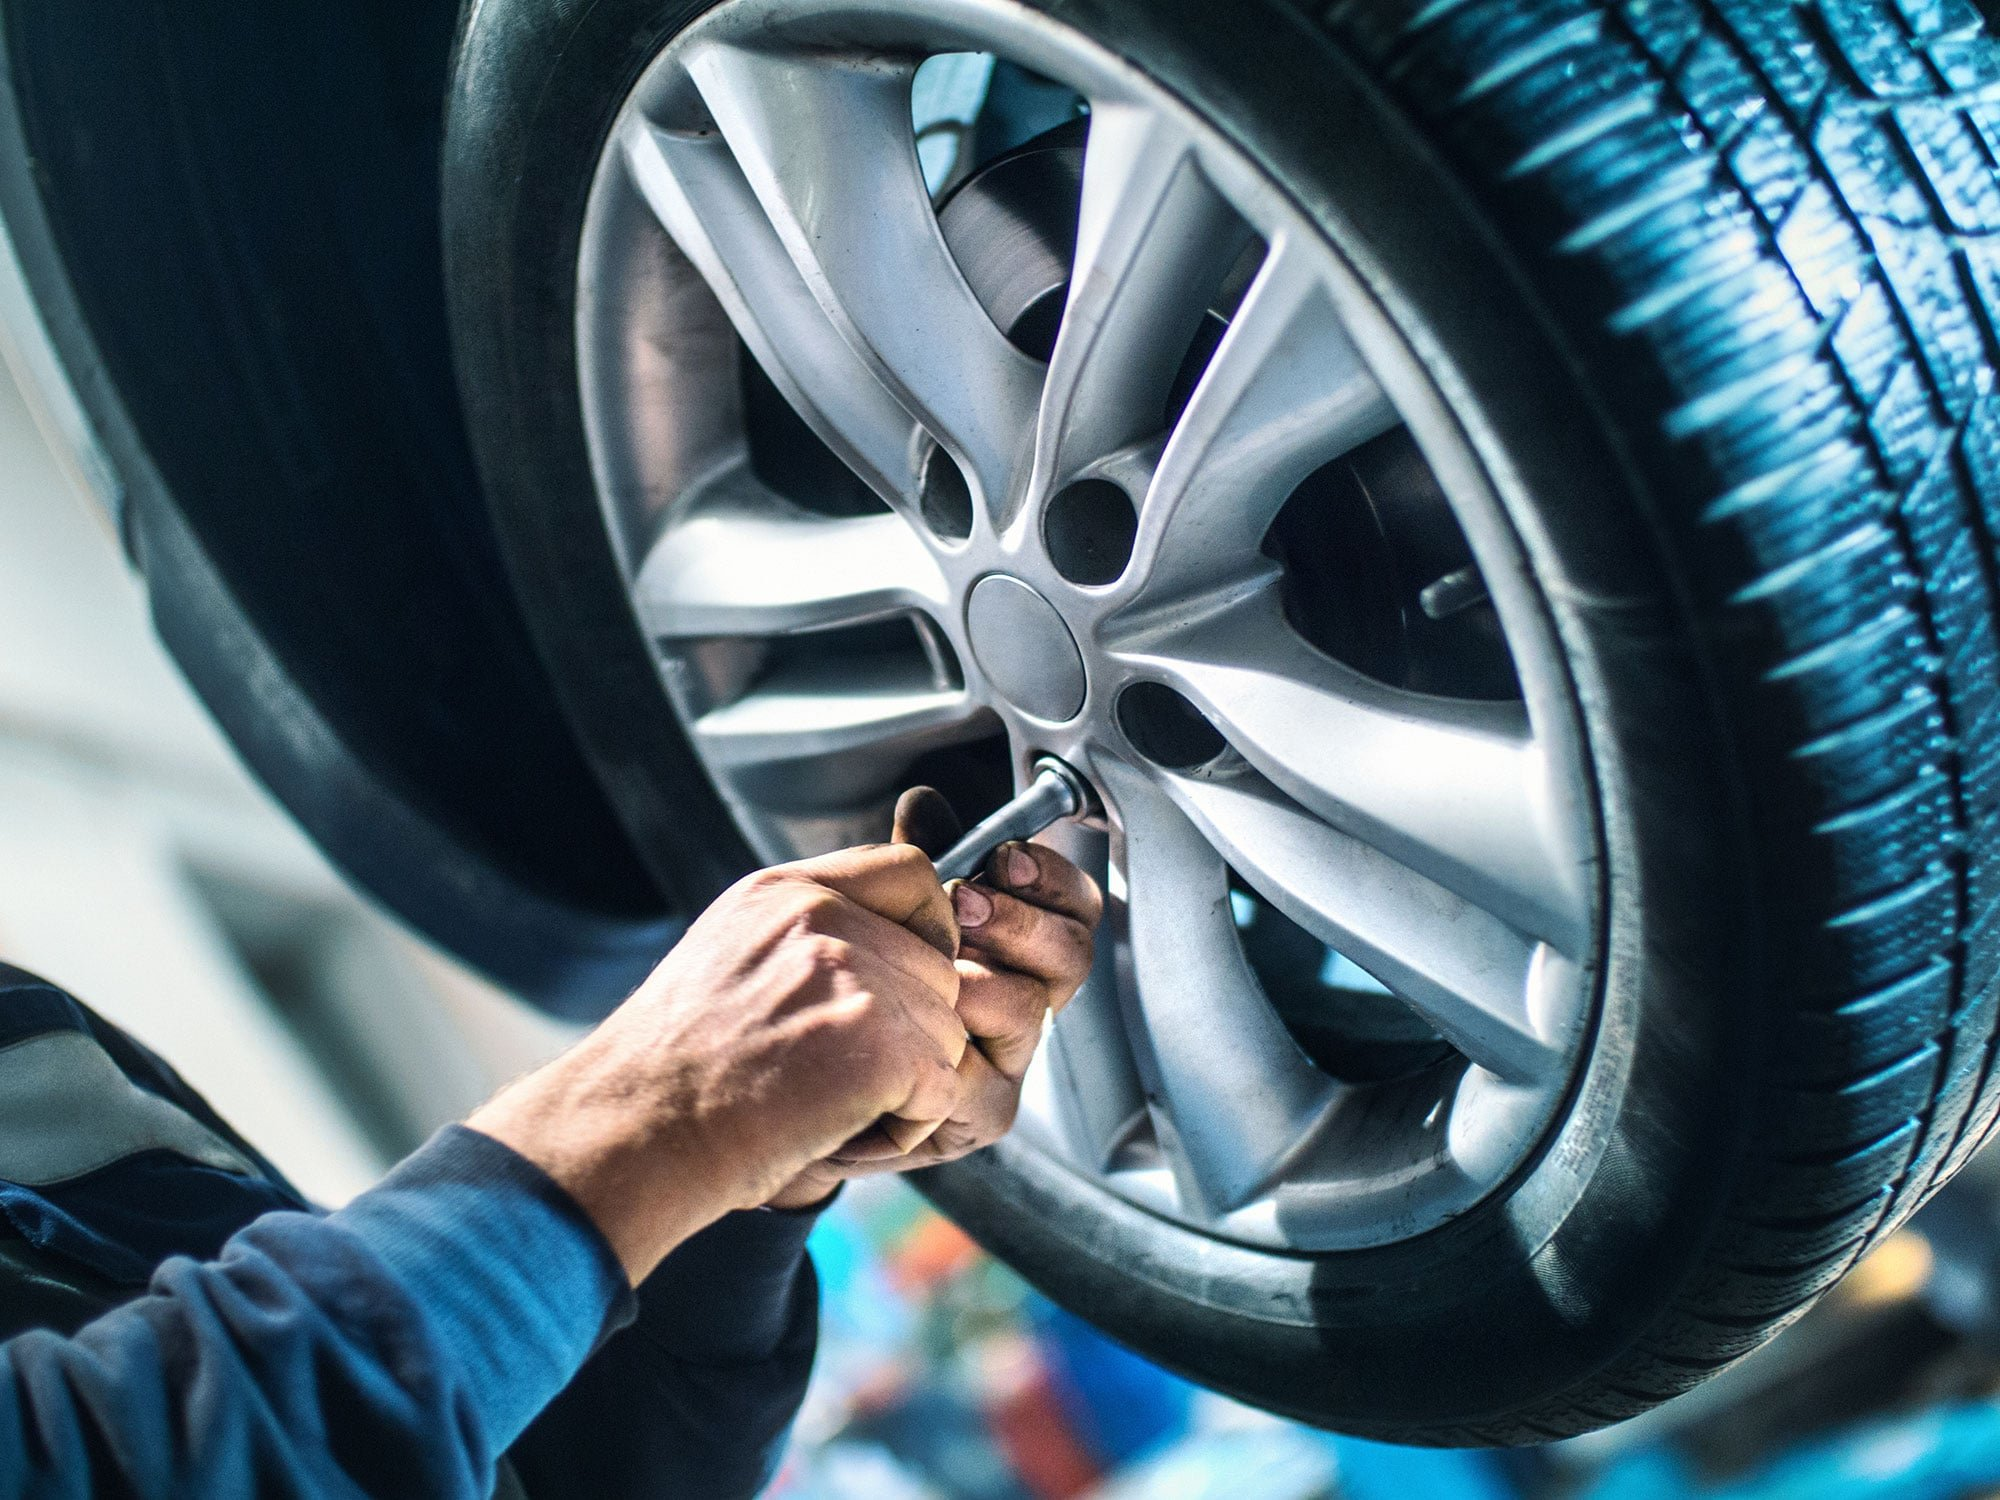 Buy 3 eligible tires, get 1 for $1